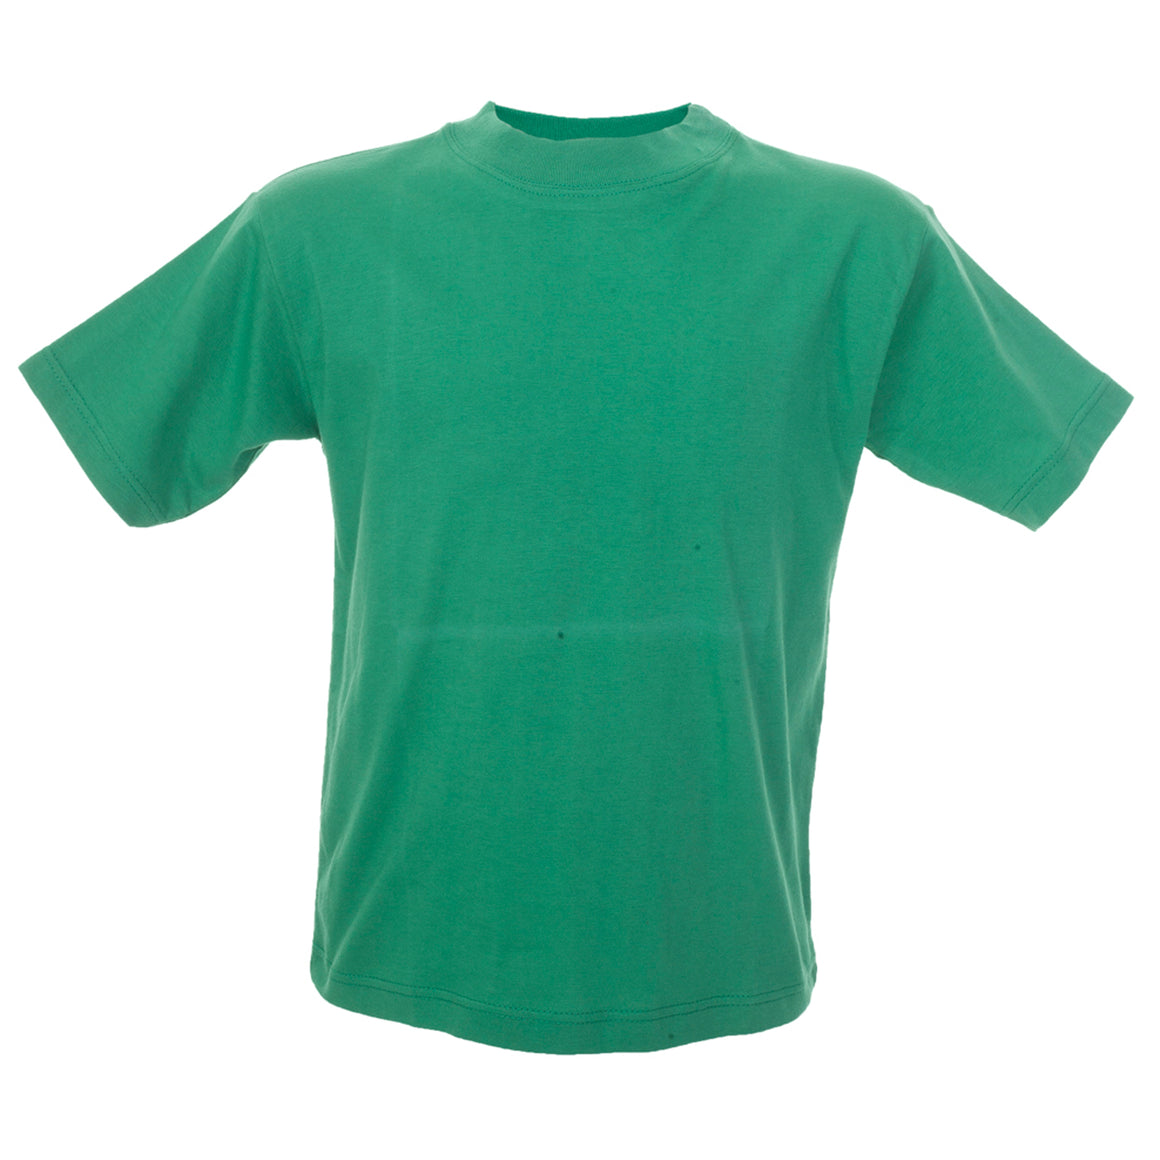 T Shirt in Green